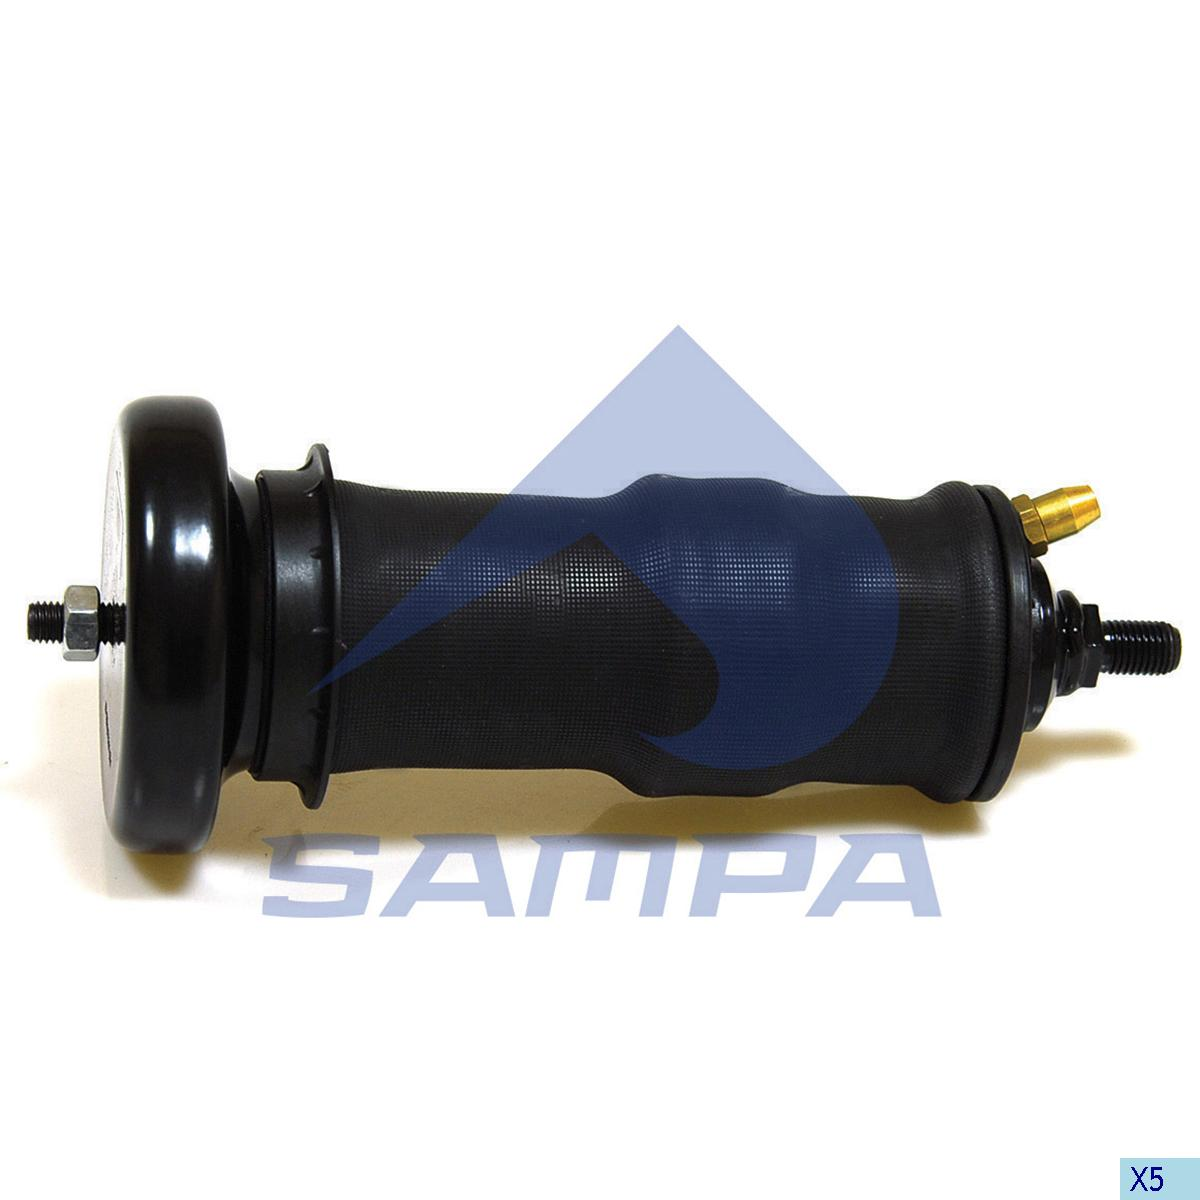 Shock Absorber, with Air Bellow, Cab, Scania, Cab